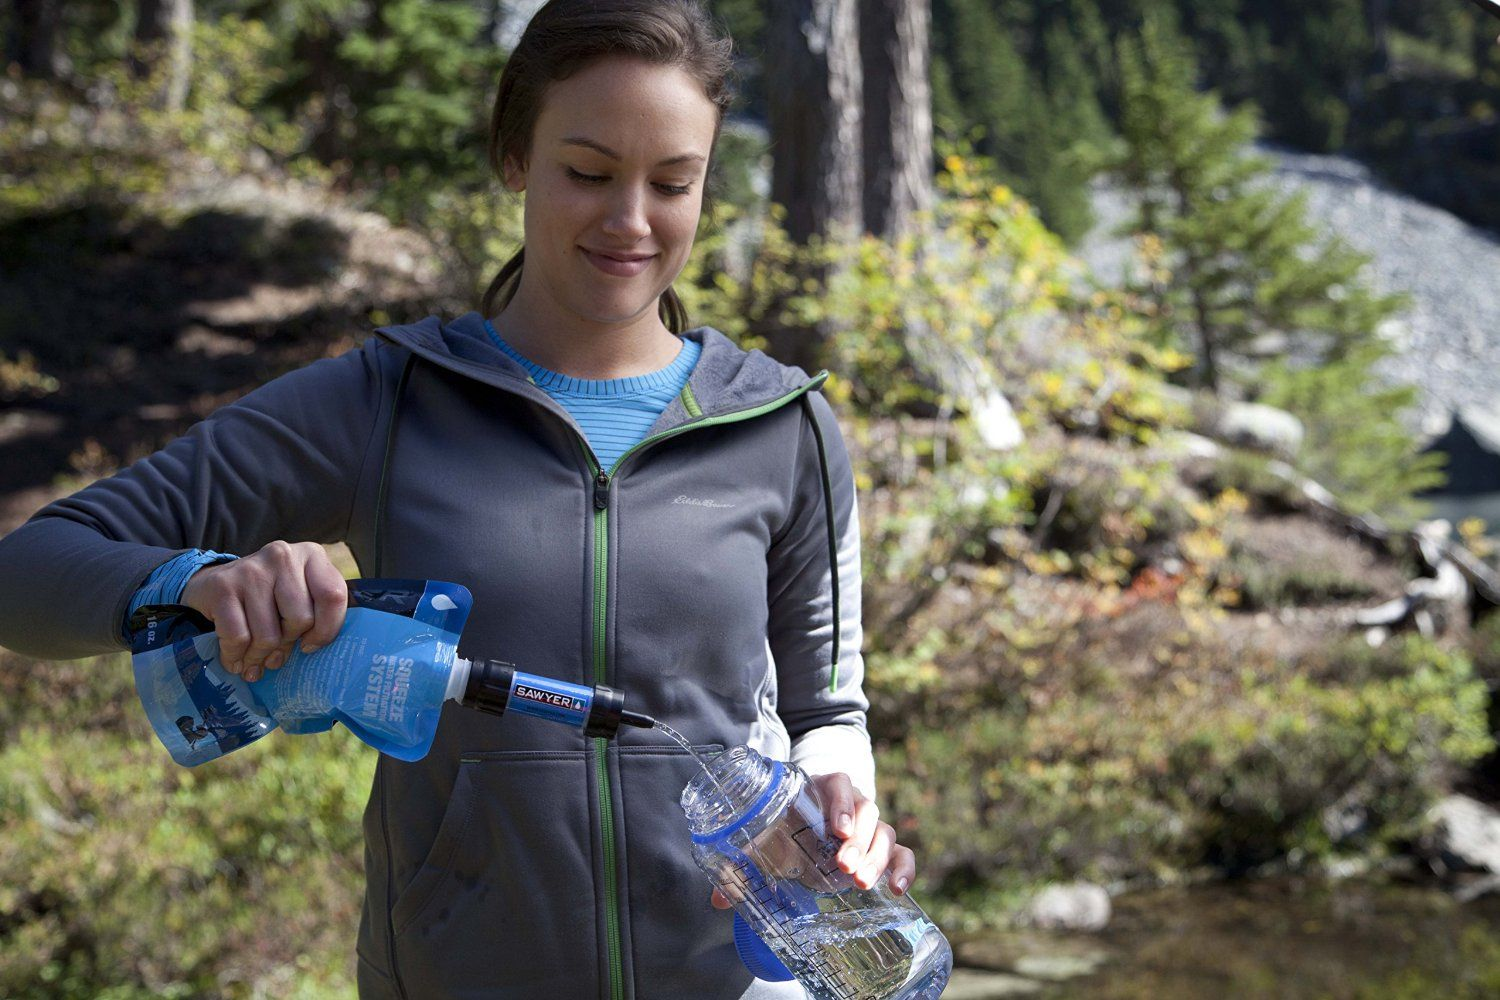 The Sawyer Mini is a great survival water filter for your bug out bag or day hike backpack